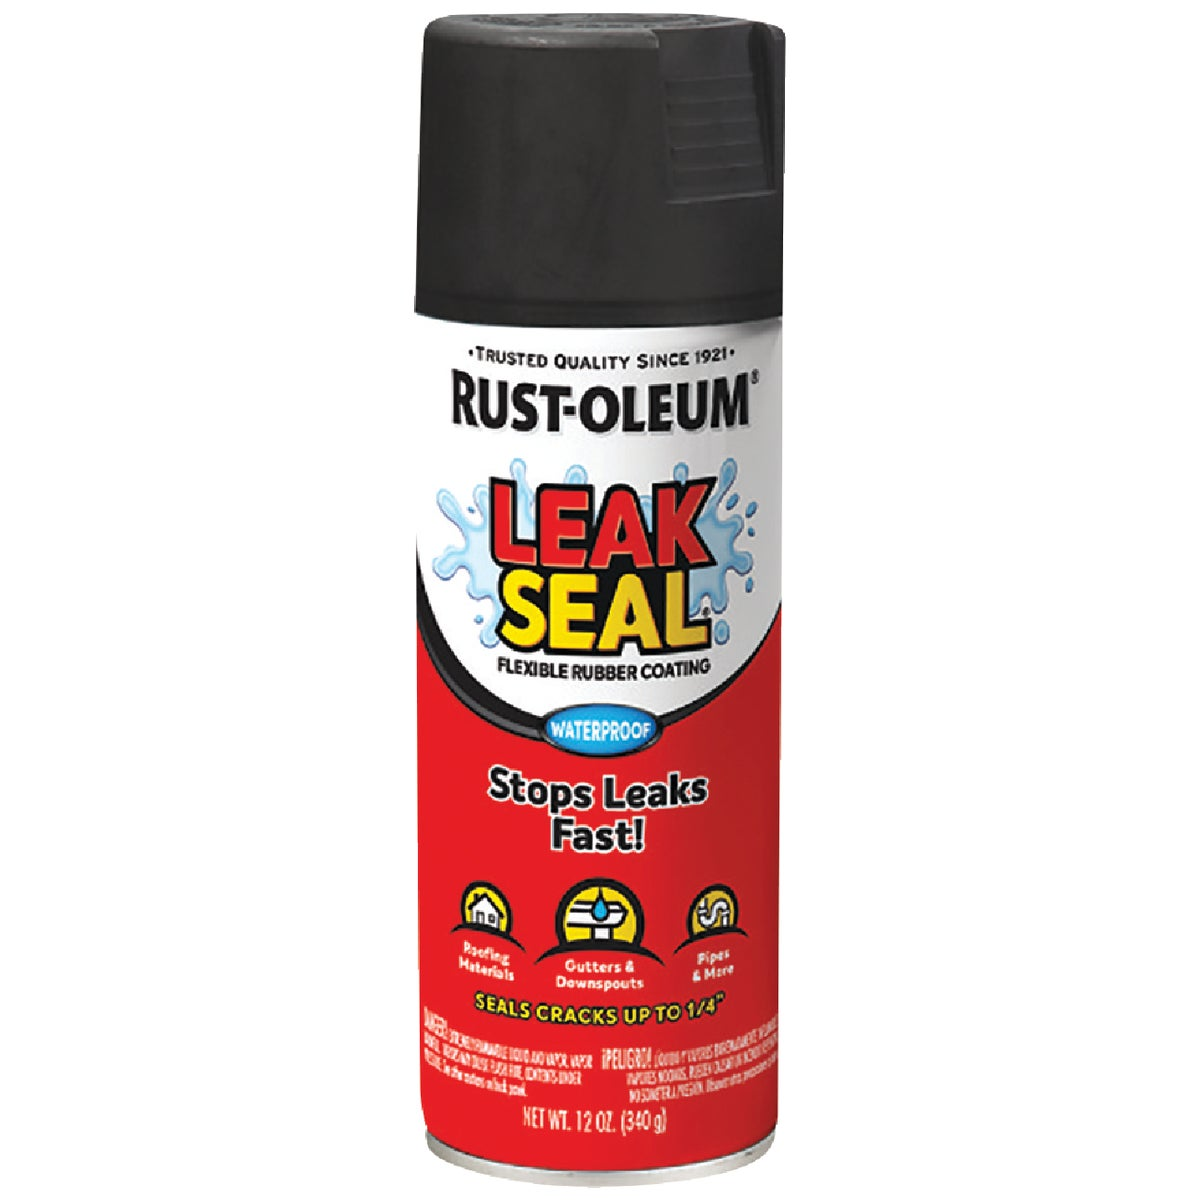 SPRAY BLACK LEAK SEALER - 265494 by Rustoleum